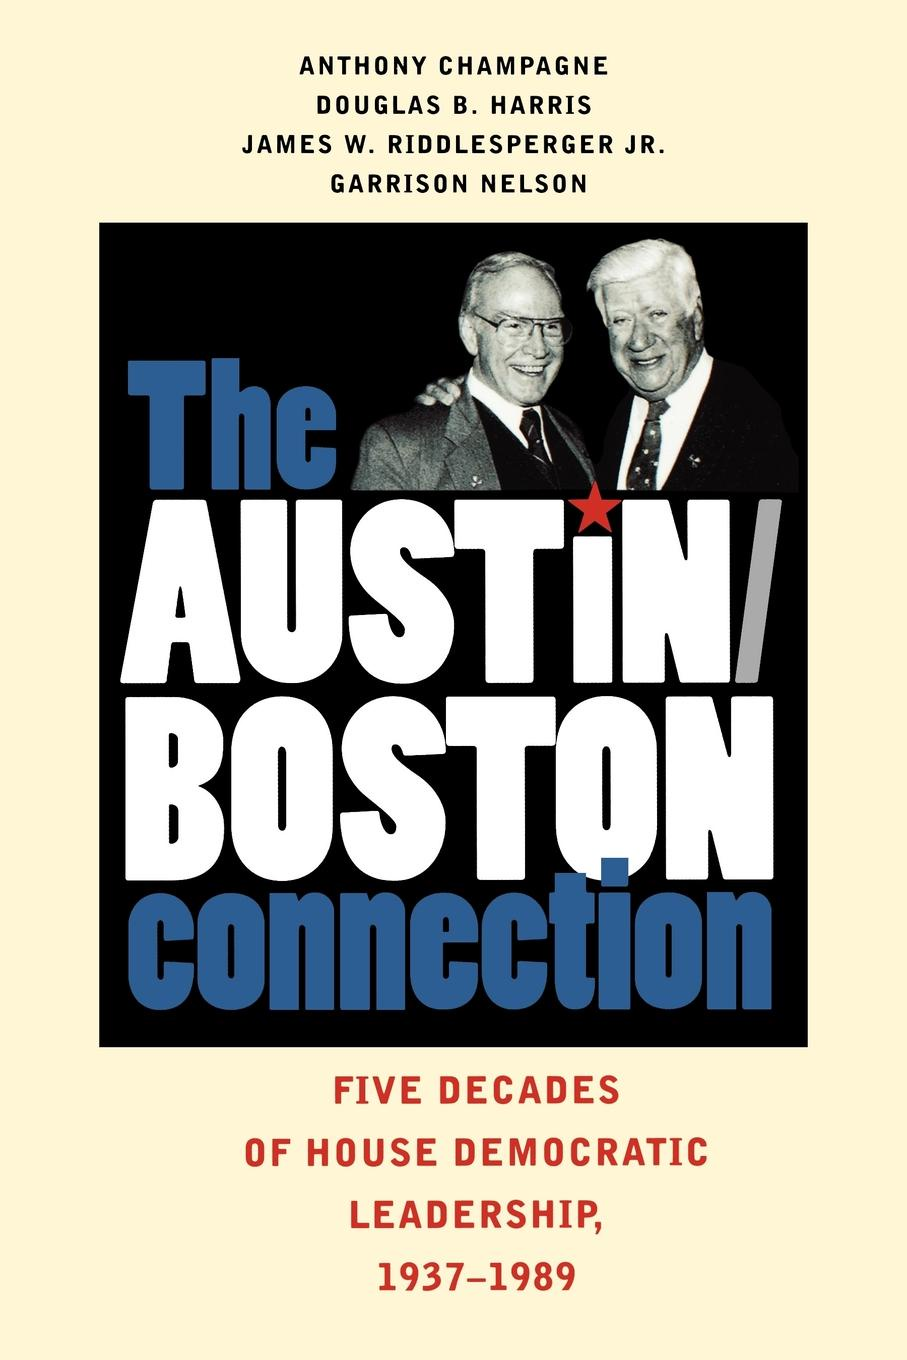 Anthony Champagne, Douglas B. Harris, James W. Jr. Riddlesperger The Austin/Boston Connection. Five Decades of House Democratic Leadership, 1937-1989 j w 1923 peltason political scientist and leader in higher education 1947 1995 oral history transcript sixteenth president of the university of california chancellor at uc irvine and the university of illinois